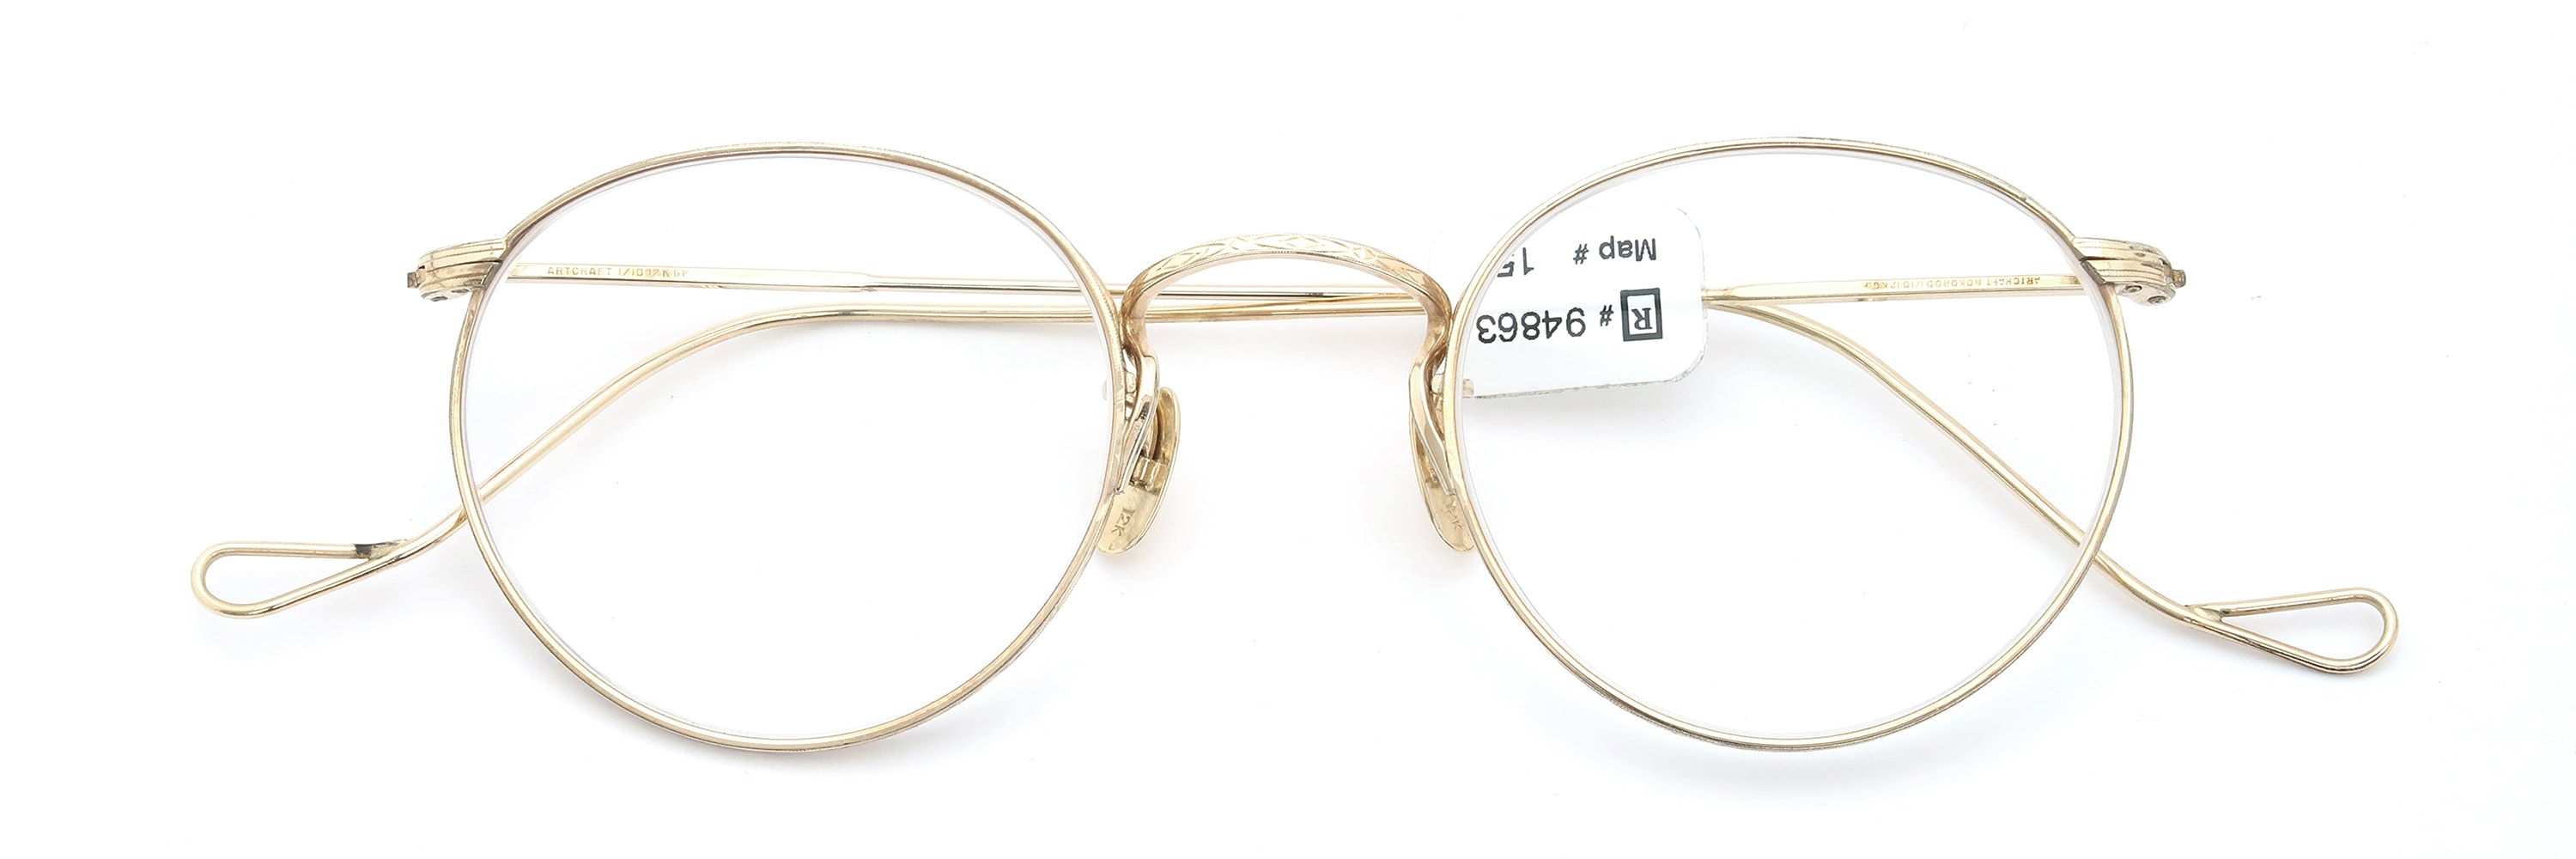 The Spectacle メガネ 1937 Artcraft Optical The-Artbit NOKOROD P-6 G 12kPads 46-22